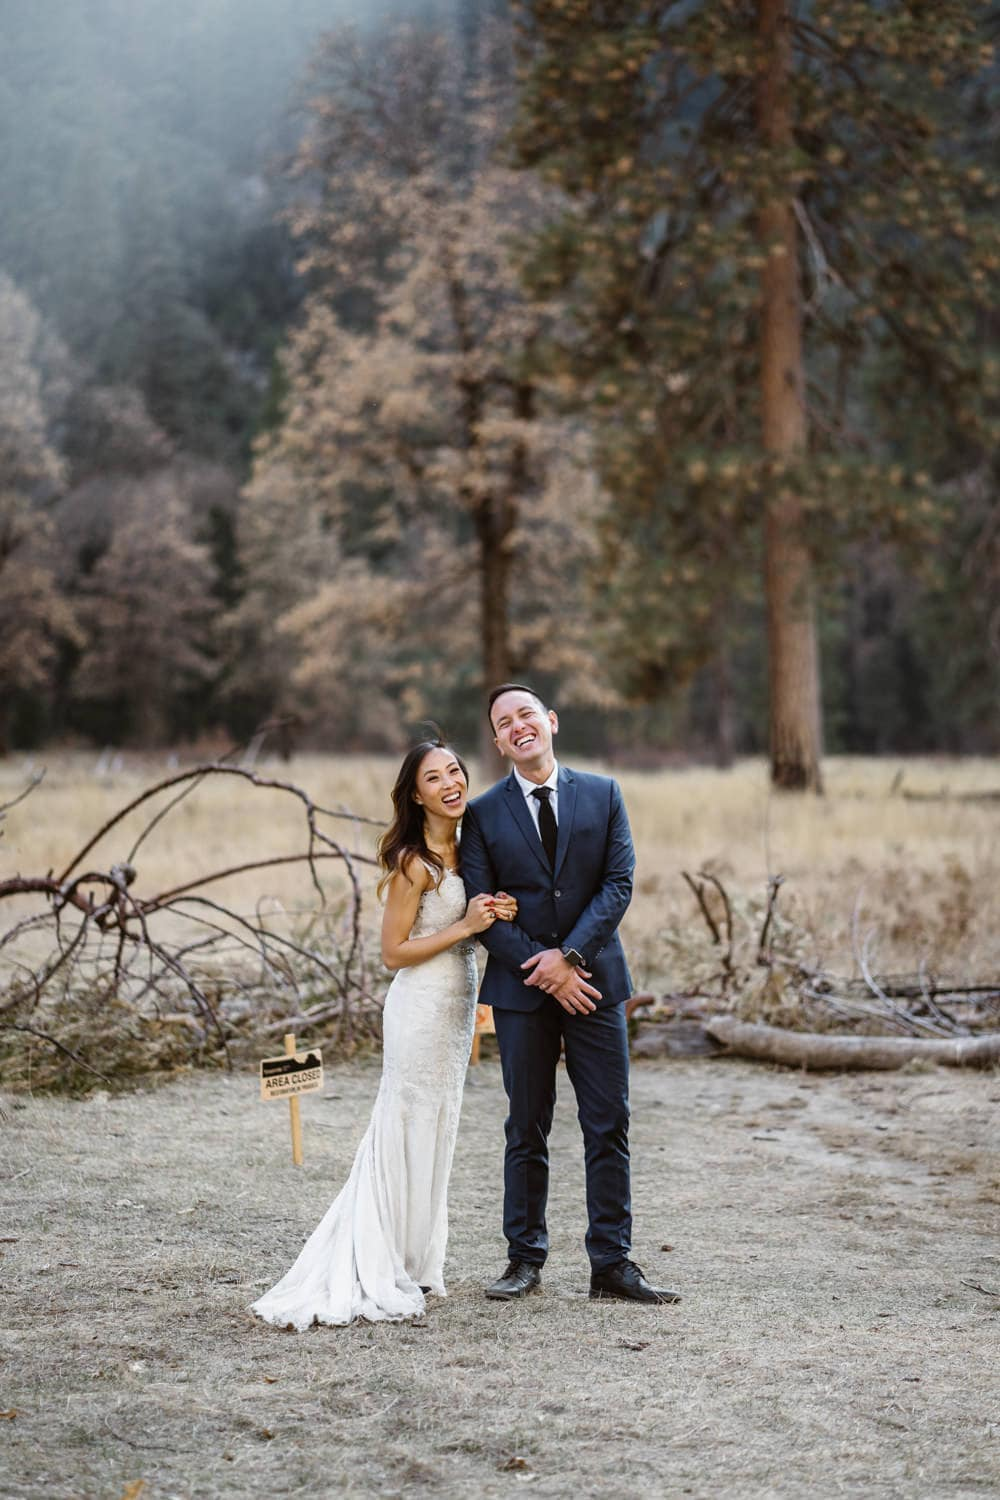 Bride and Groom Laughing Yosemite Valley Elopement